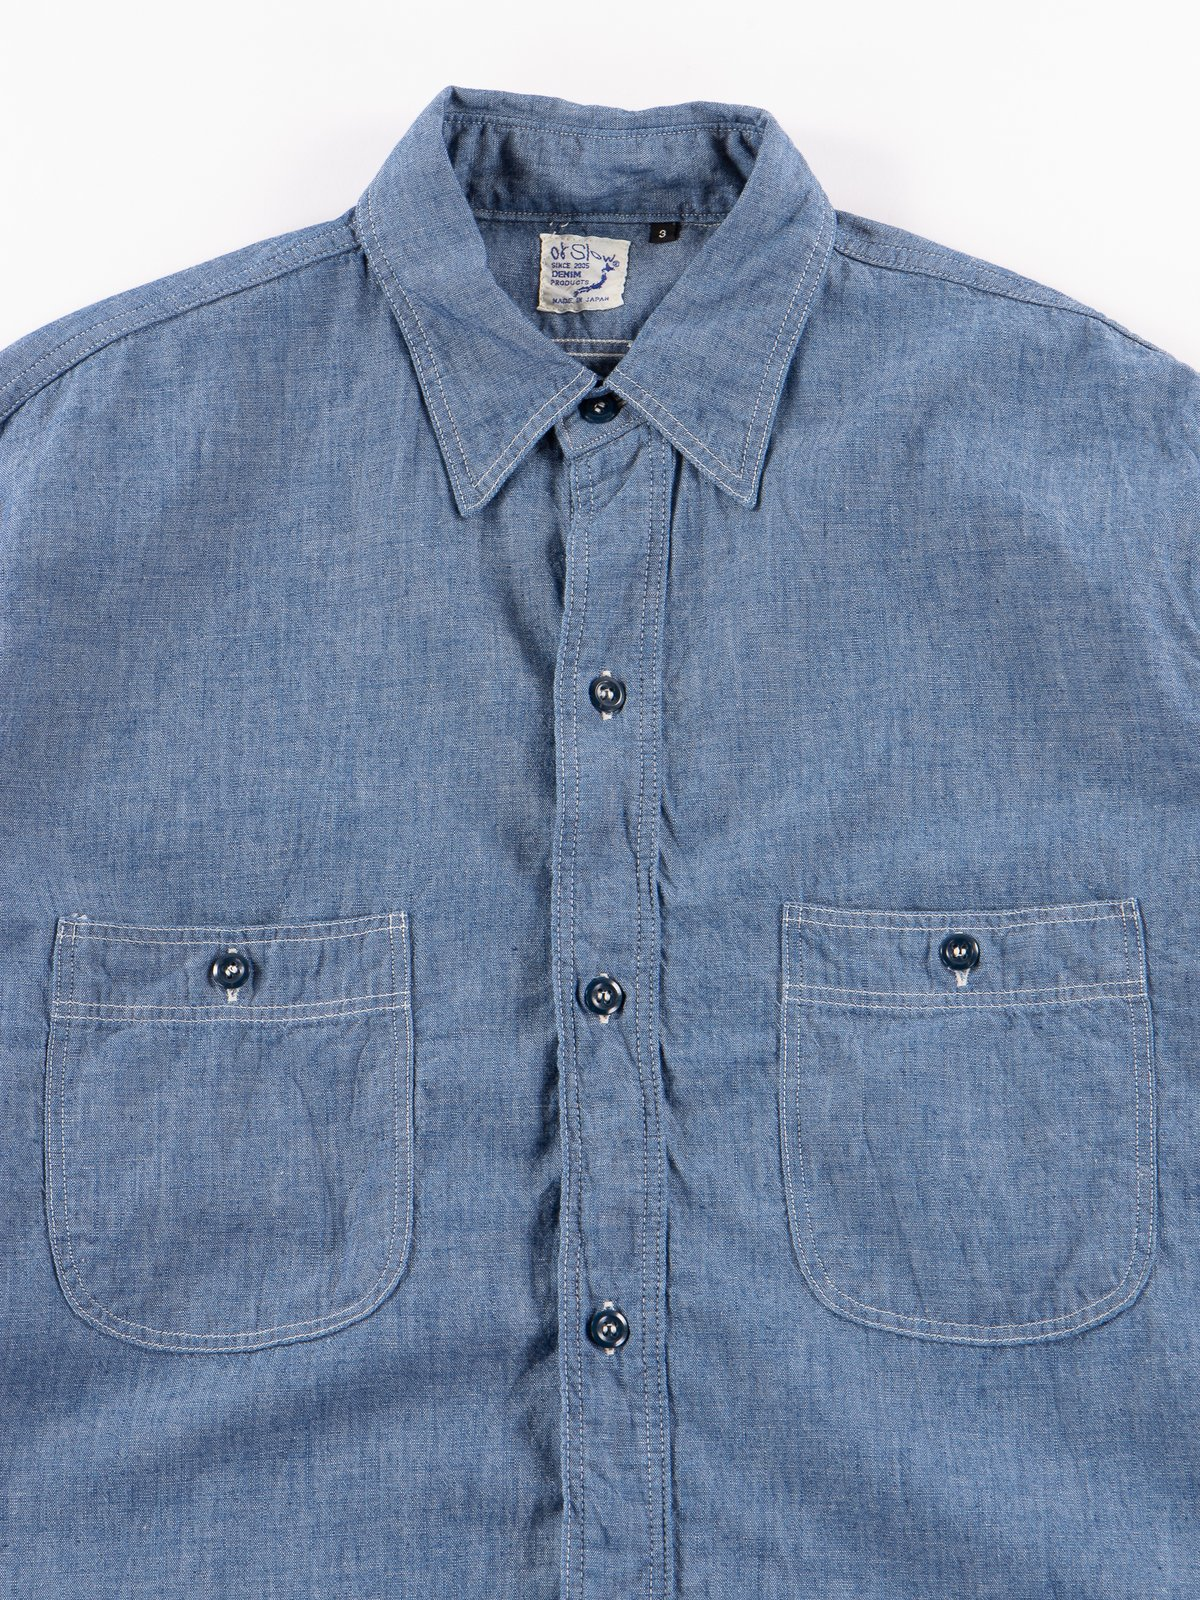 4af333b46ef Blue Chambray Vintage Fit Work Shirt by orSlow – The Bureau Belfast ...